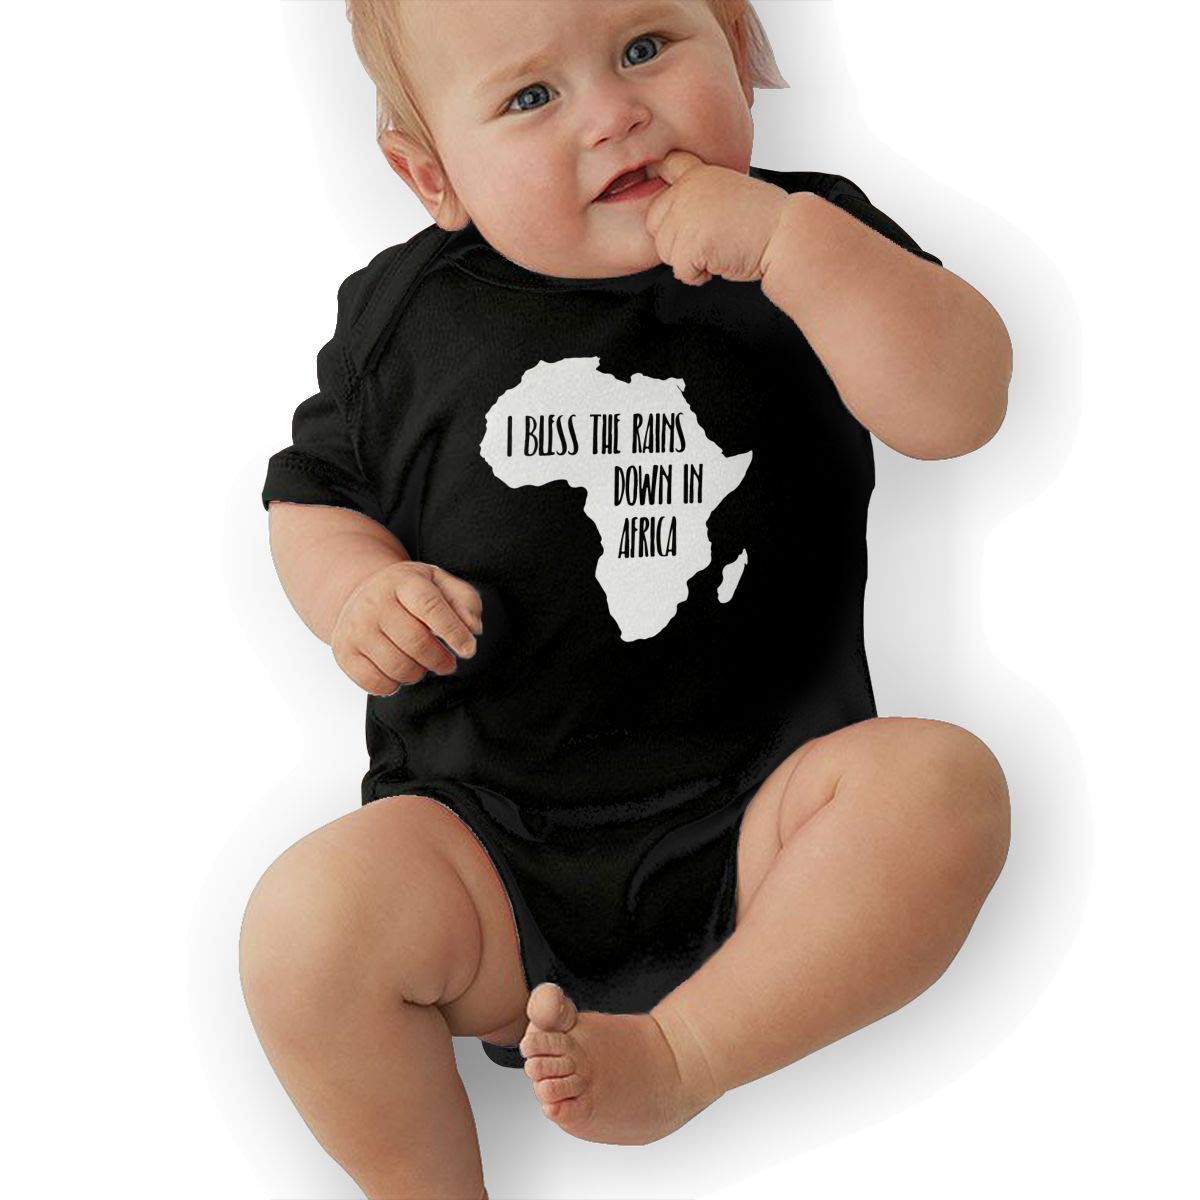 Cute I Bless The Rains Down in Africa-1 Jumpsuit Short Sleeve Cotton Rompers for Unisex Baby